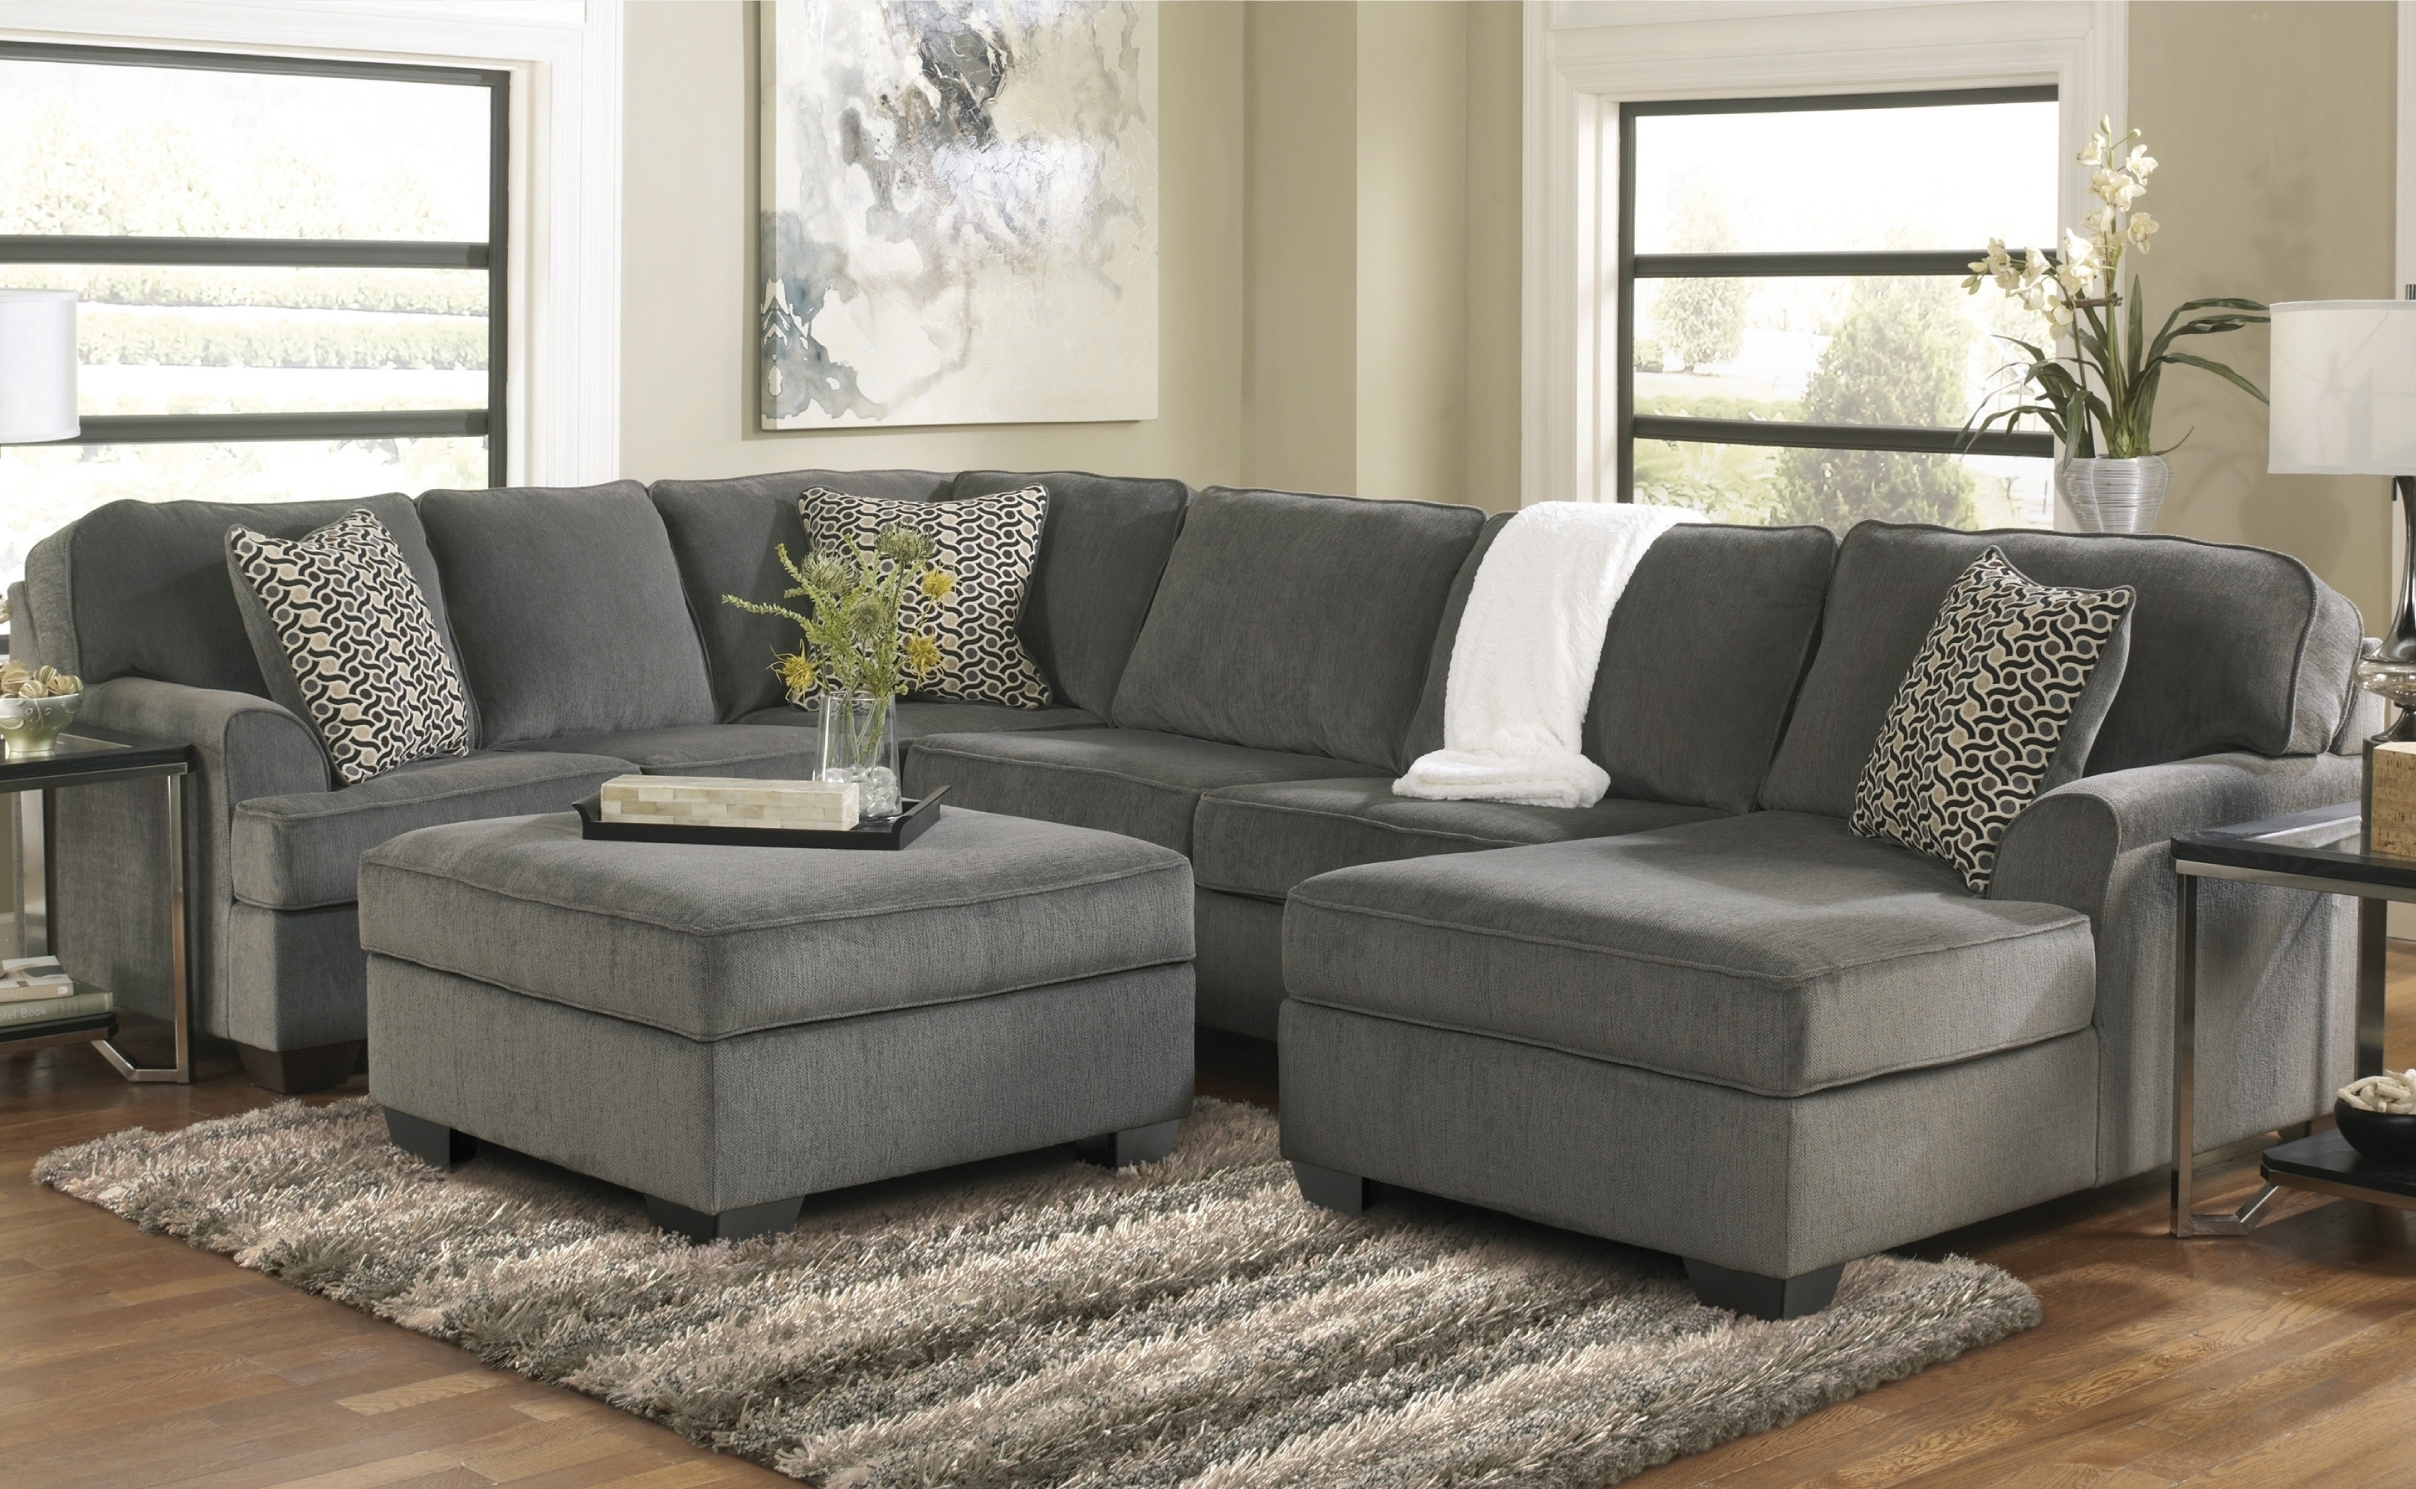 Leather Sectional Sofas Raleigh Nc | Ezhandui In Raleigh Nc Sectional Sofas (Gallery 3 of 10)